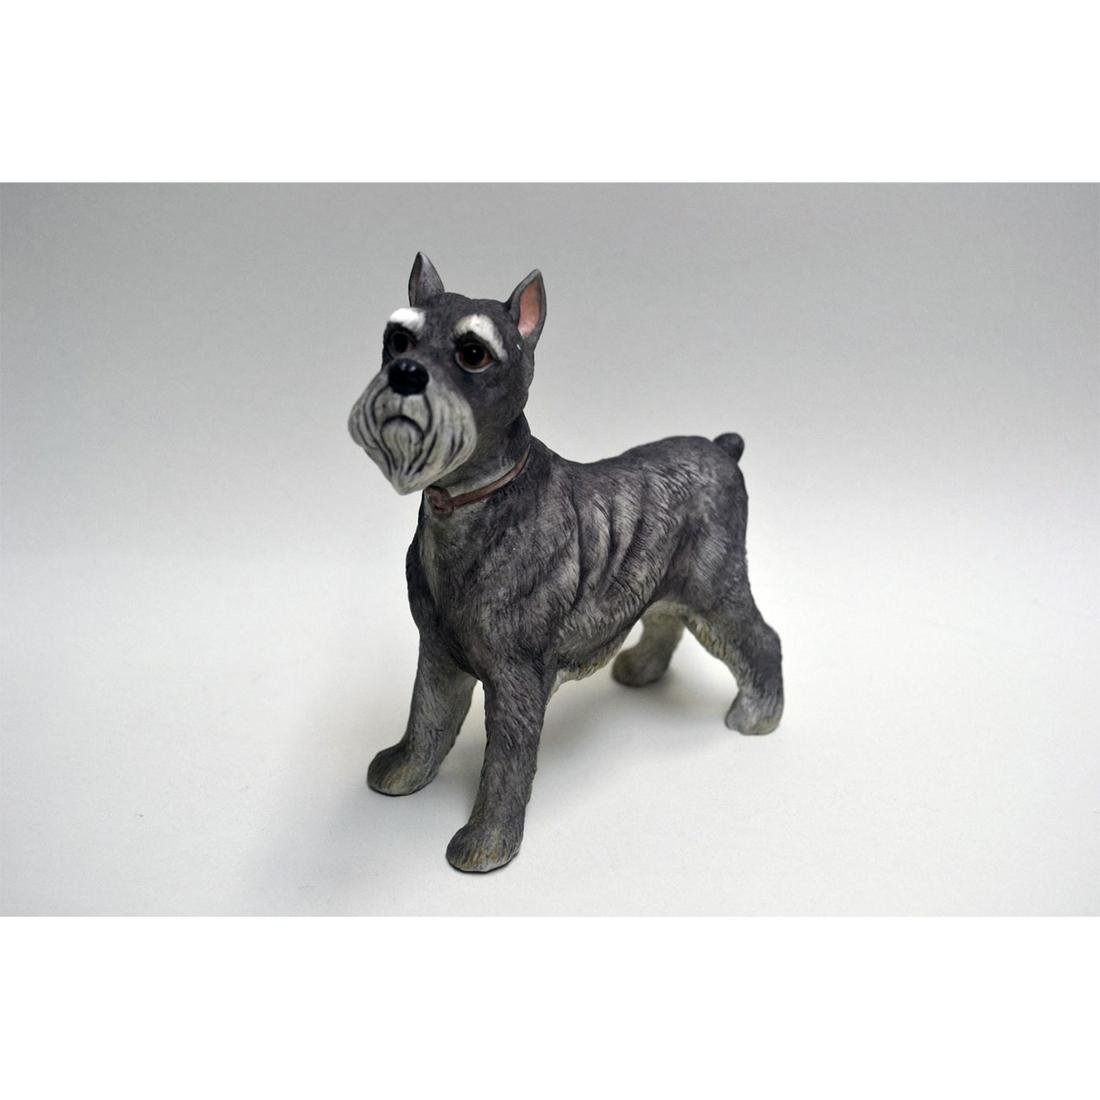 BOEHM PORCELAIN LIMITED EDITION SCHNAUZER DOG FIGURINE